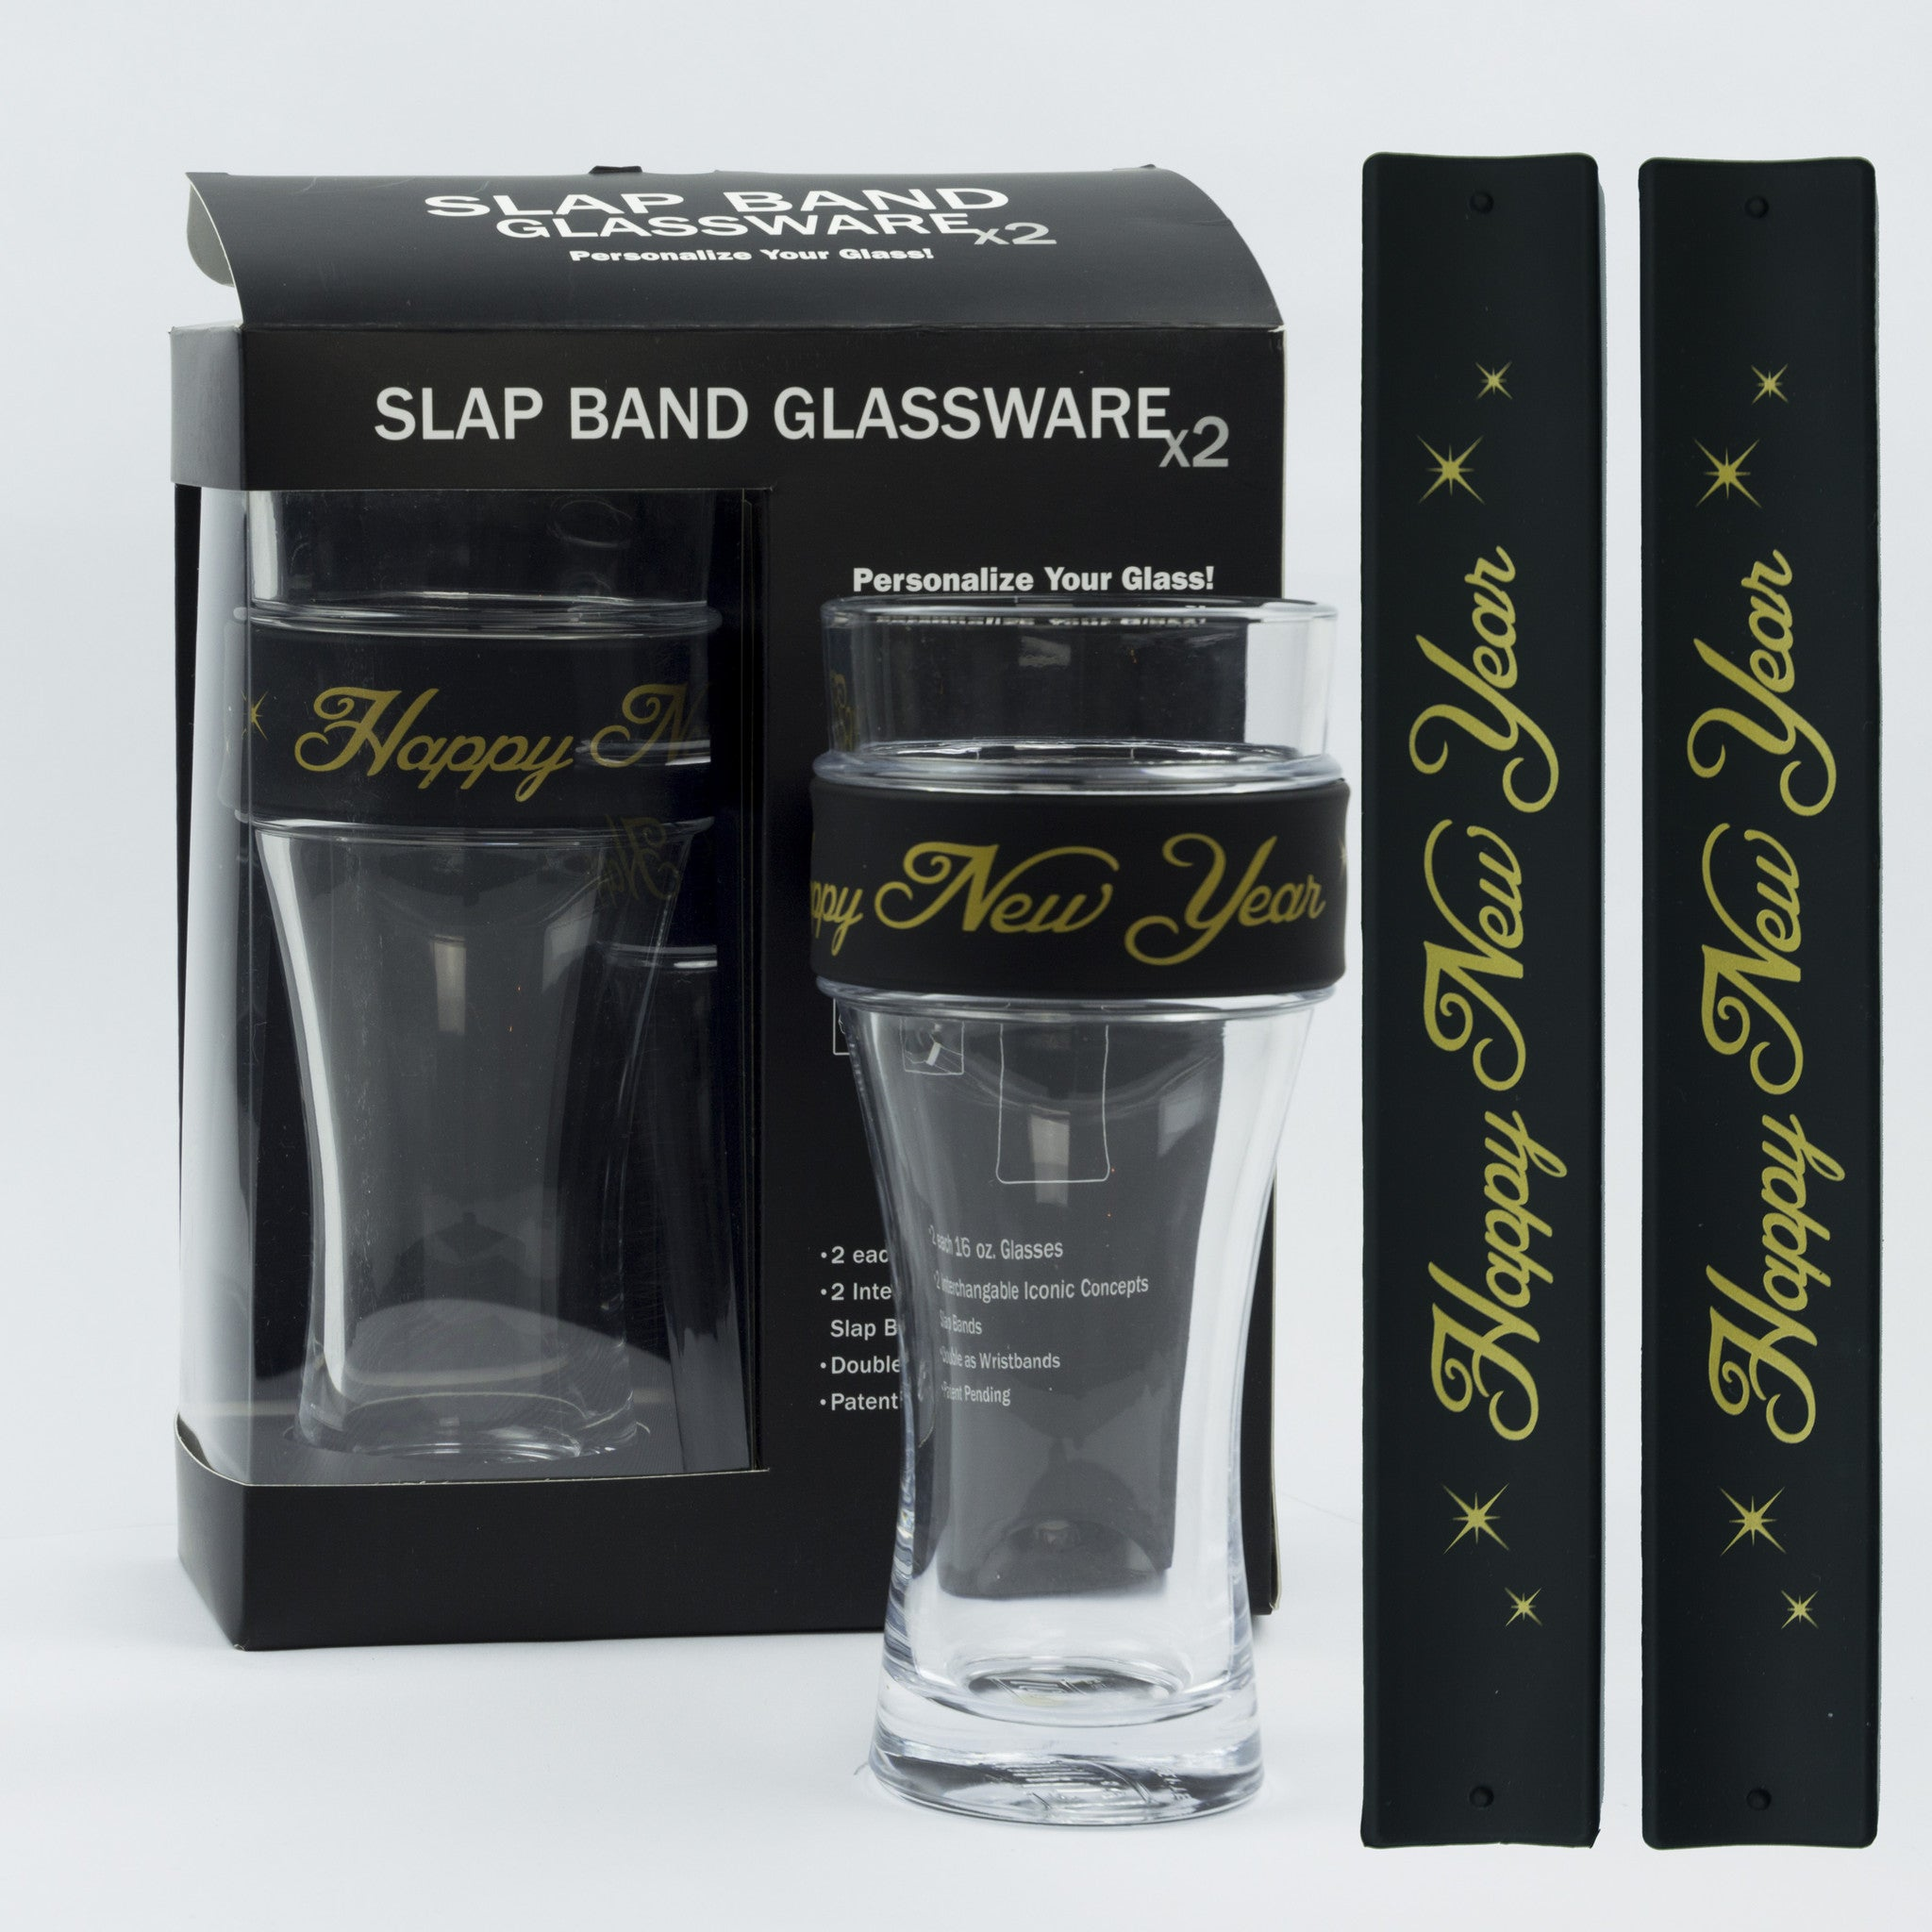 New Year Slap Band Glassware - Gold